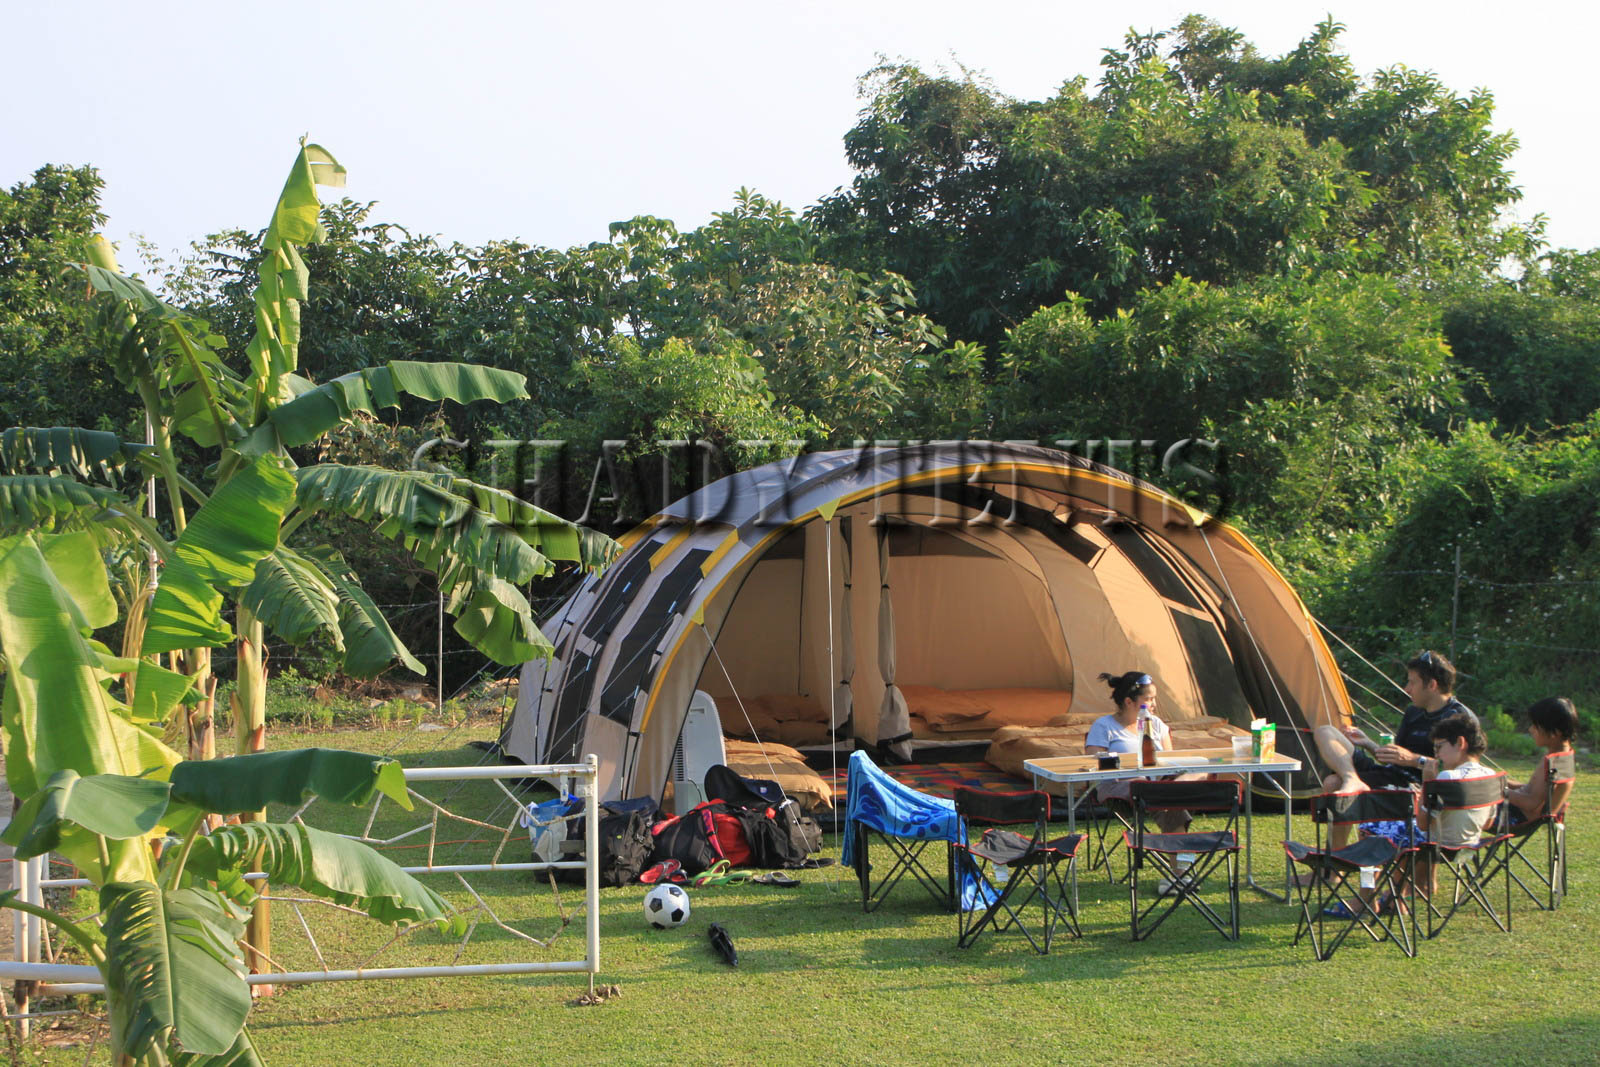 Family C&ing Tent1 & Tents @ 45/- Call Shady 8792092014 or 9663807766 Free Home Delivery